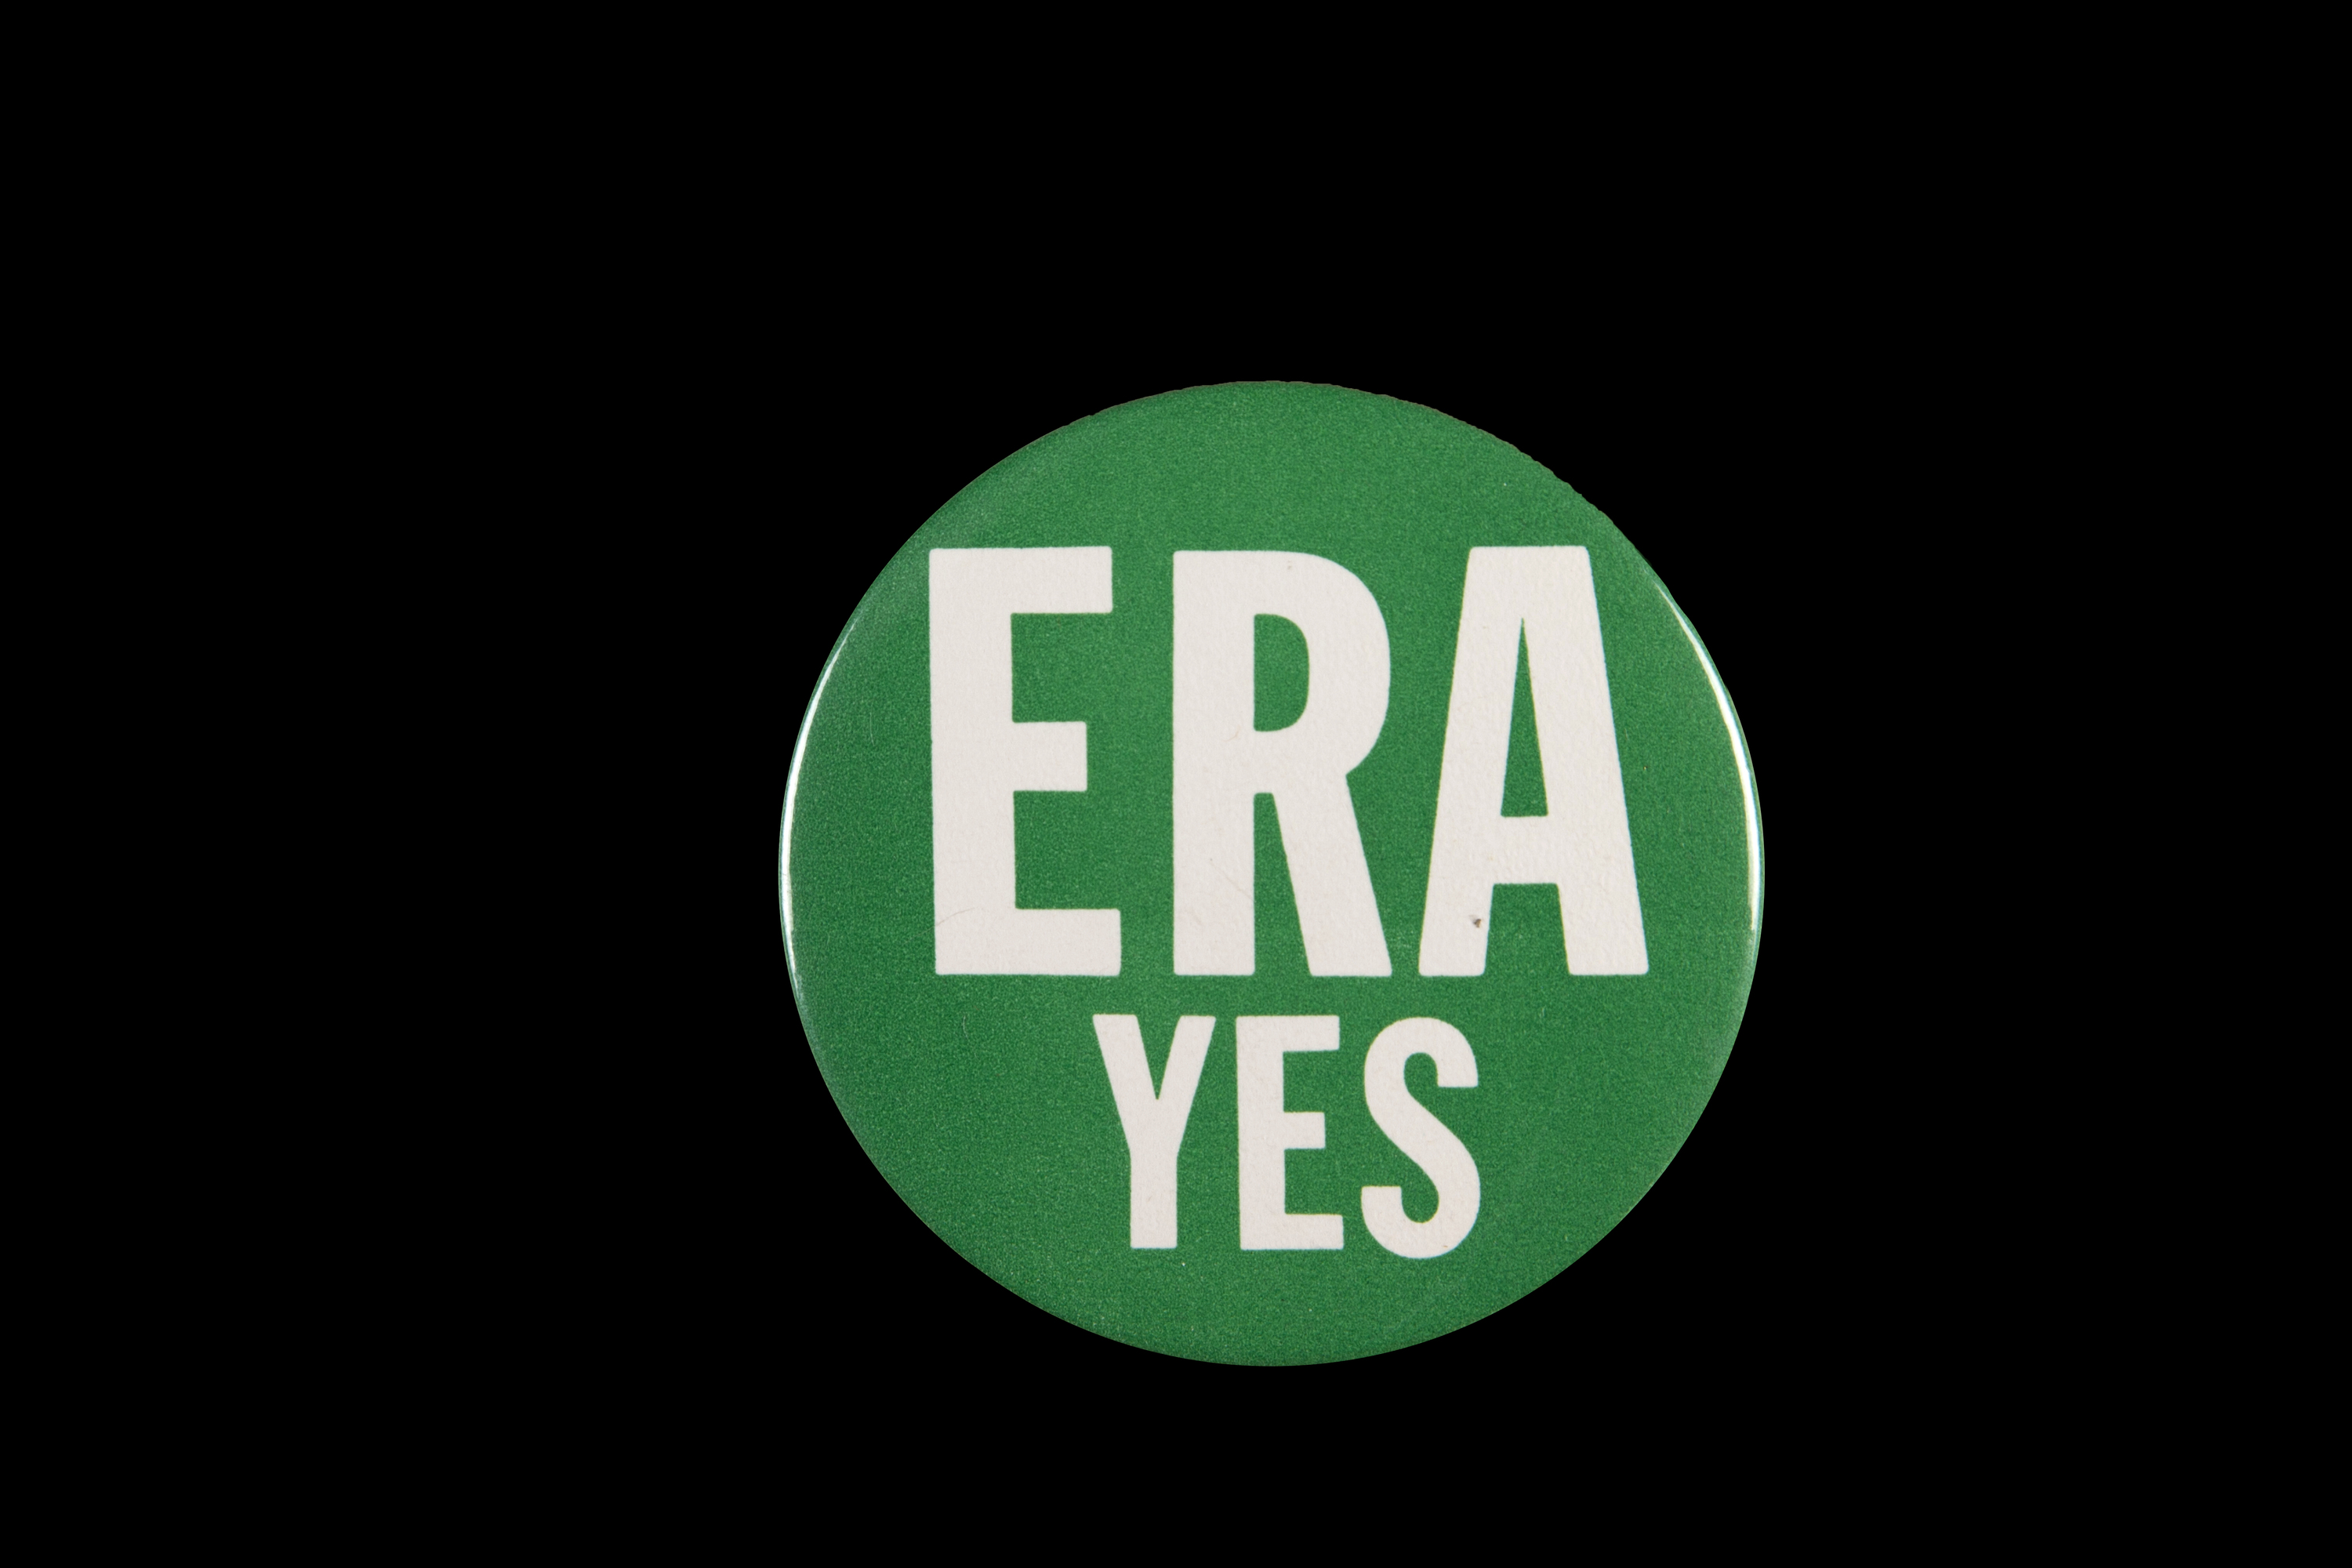 ERA YES button, 1970s-1980s